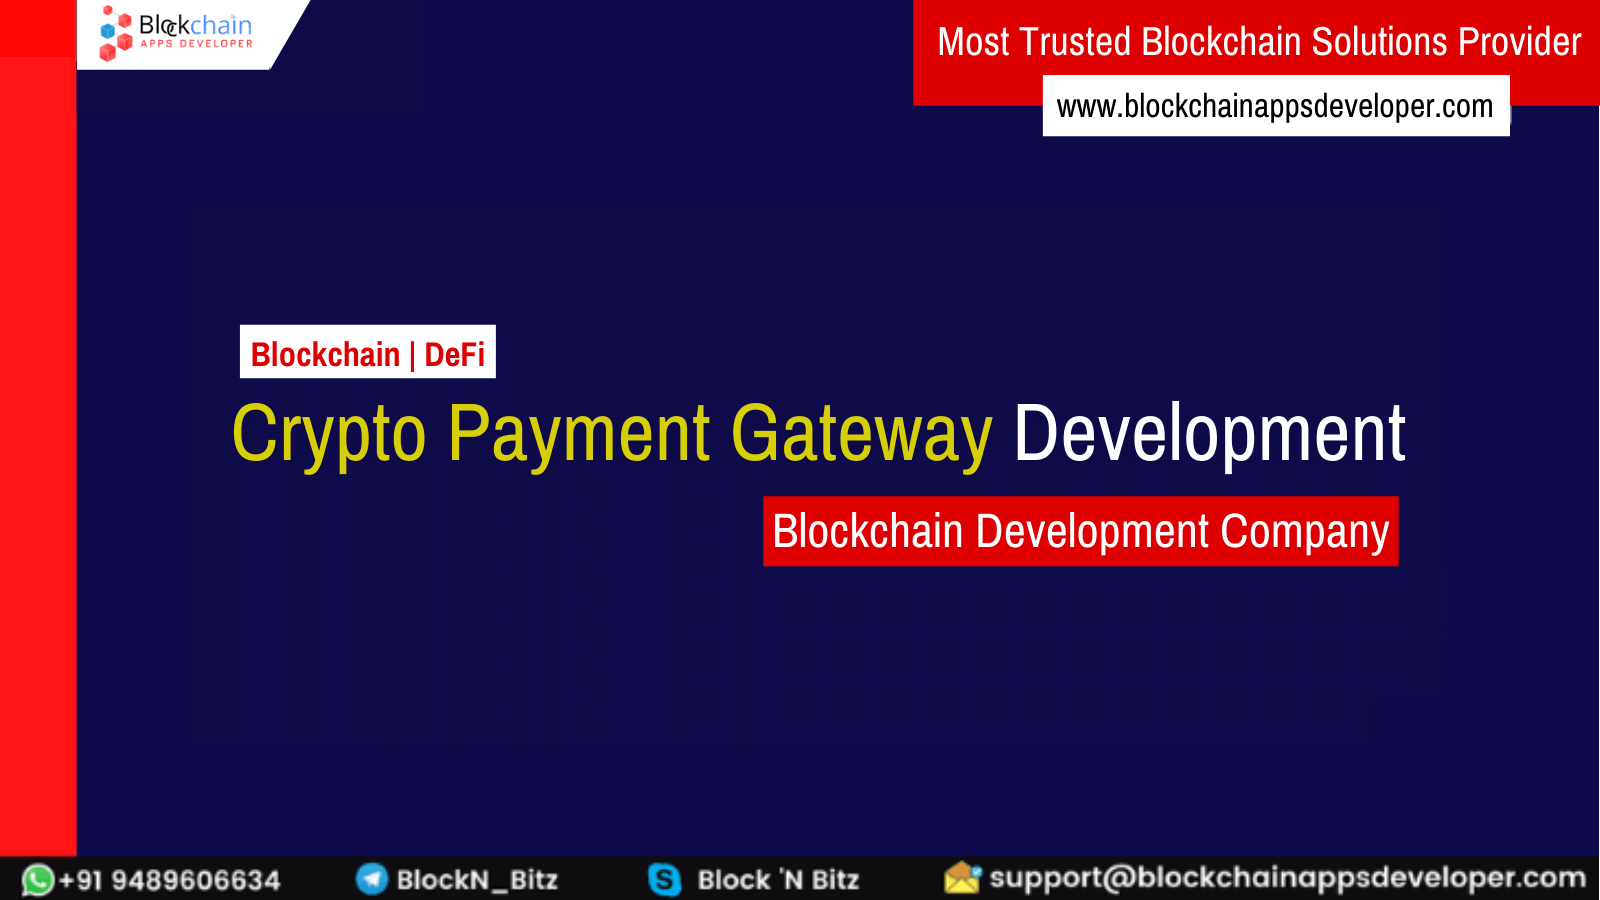 Cryptocurrency Payment Gateway Development Services Company